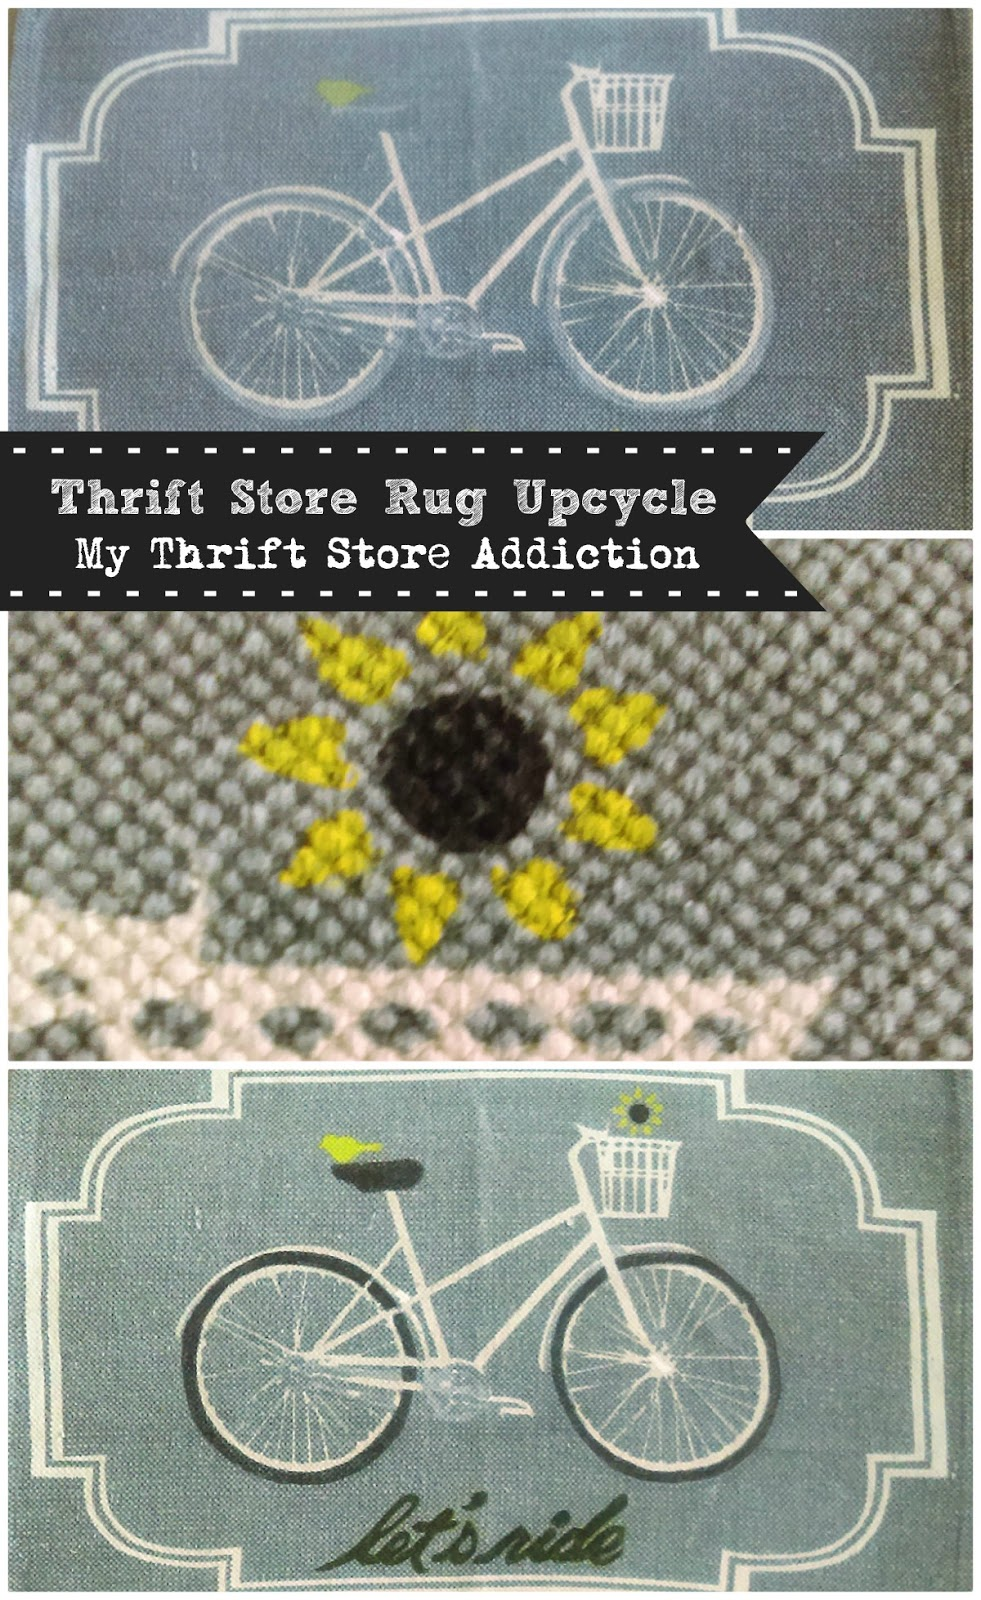 Thrift store rug upcycle